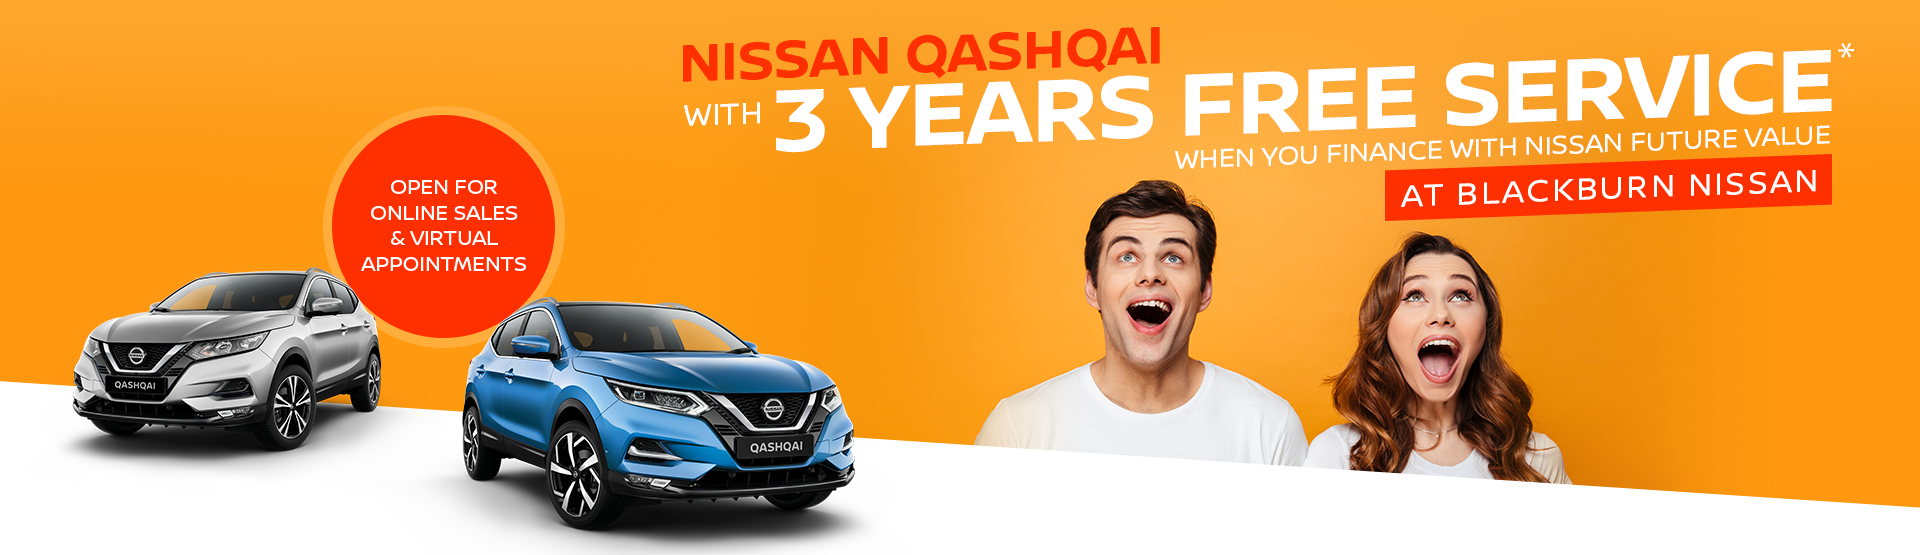 Blackburn Nissan Qashqai 3 Years Free Service